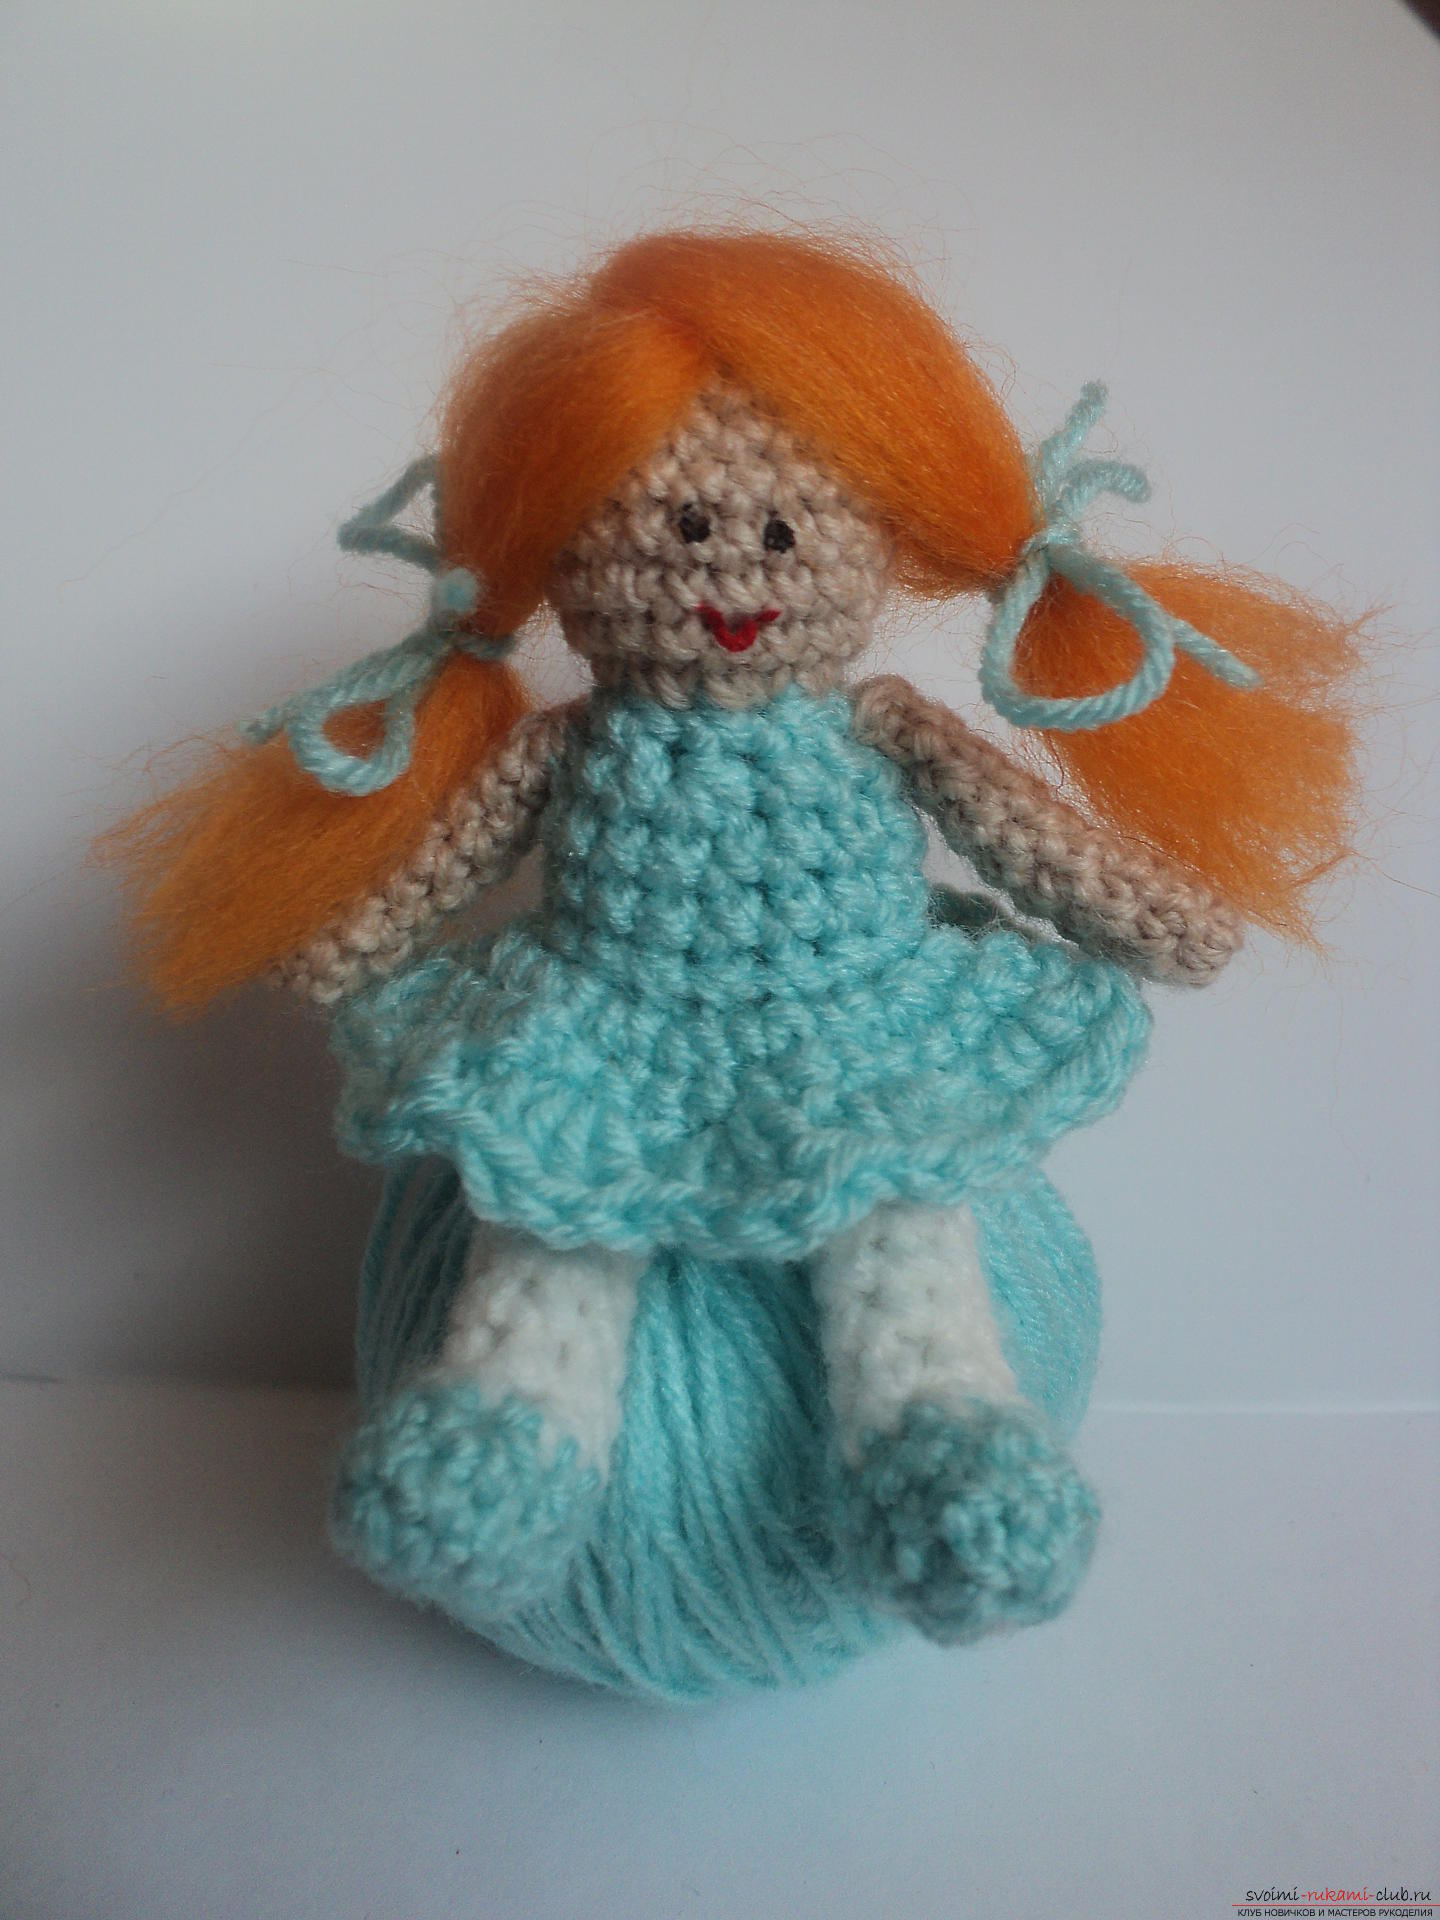 This detailed master class of crocheting toys will teach you how to tie a doll with your own hands .. Photo # 12